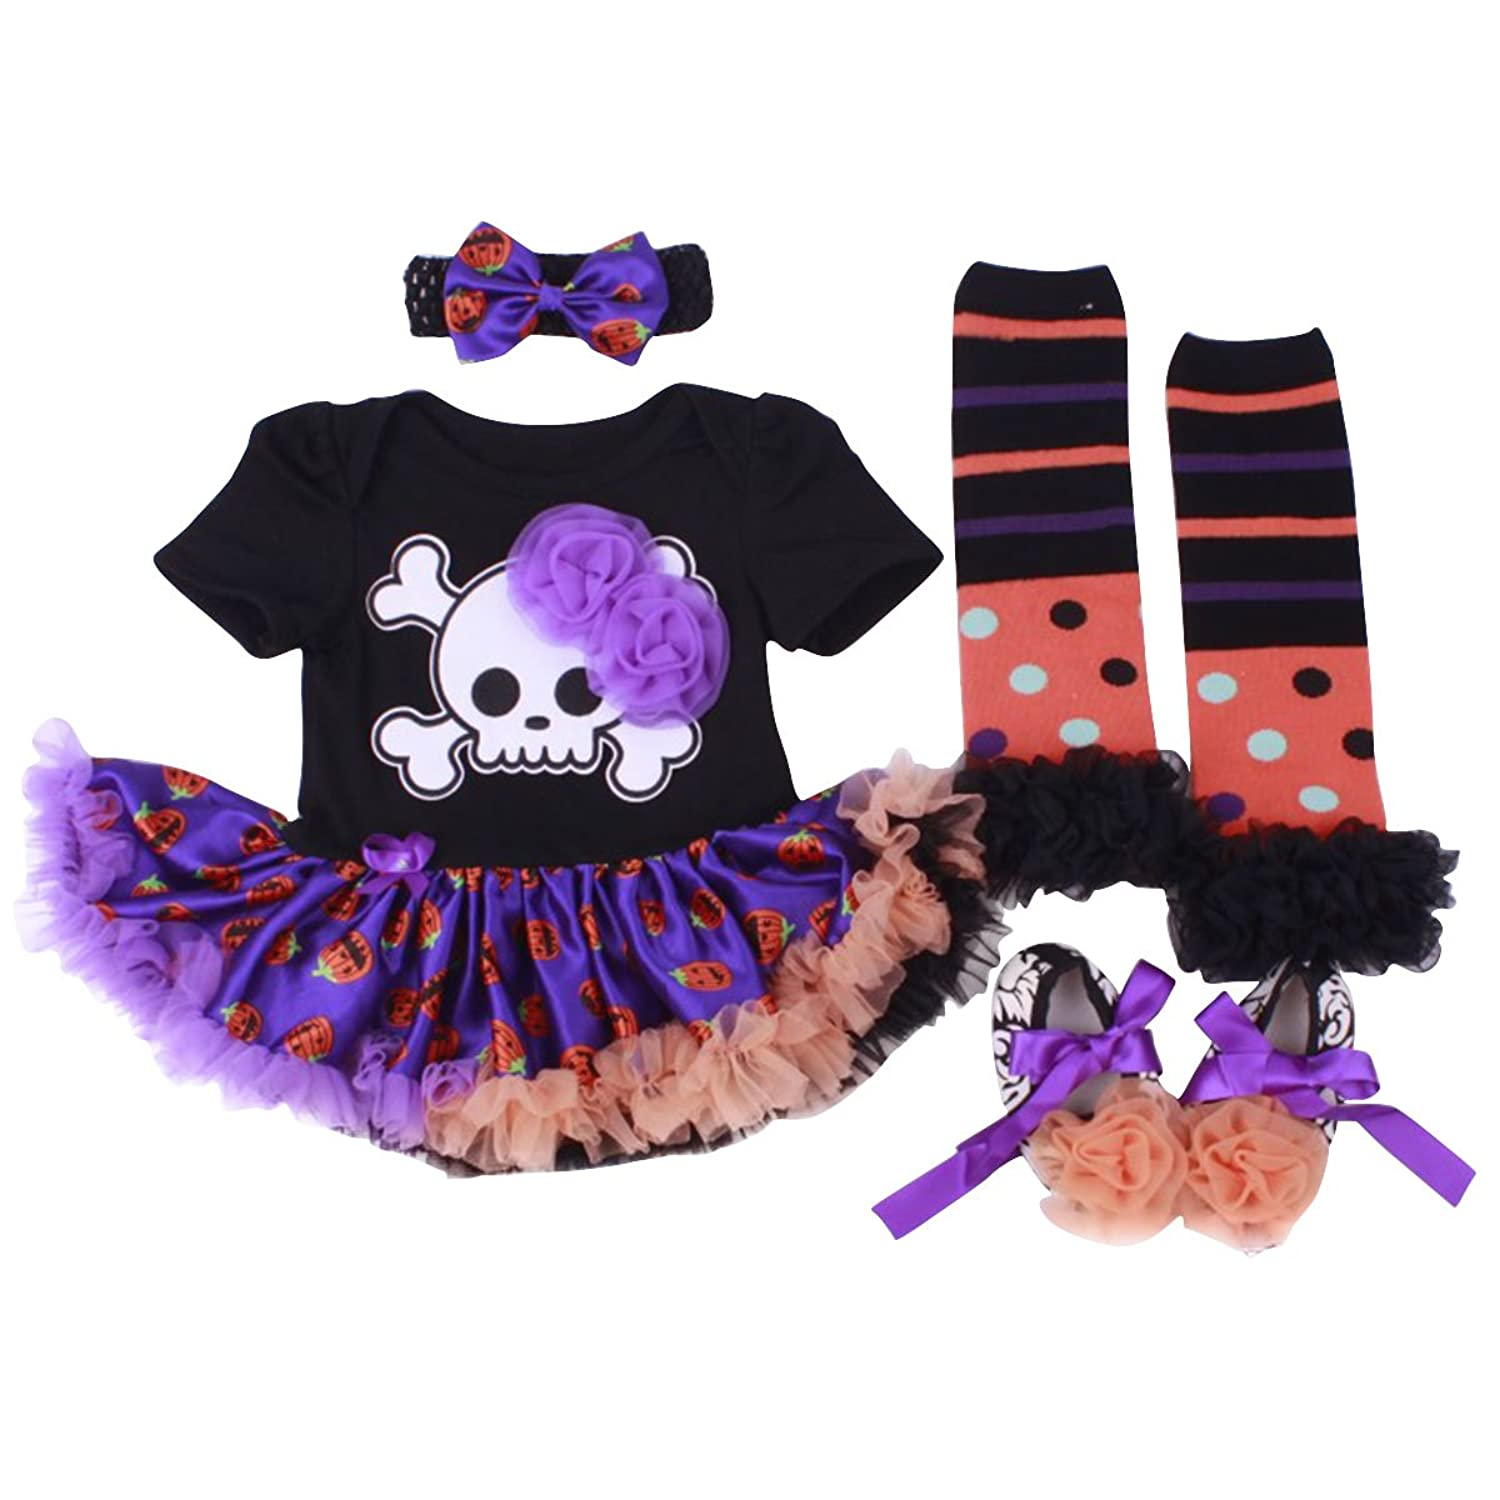 b86af6bb4 ✿HALLOWEEN THEME: Features Halloween theme skull skeleton pattern print  tutu romper dress,matching cute headband leg warmers and shoes for baby  girl,new in ...